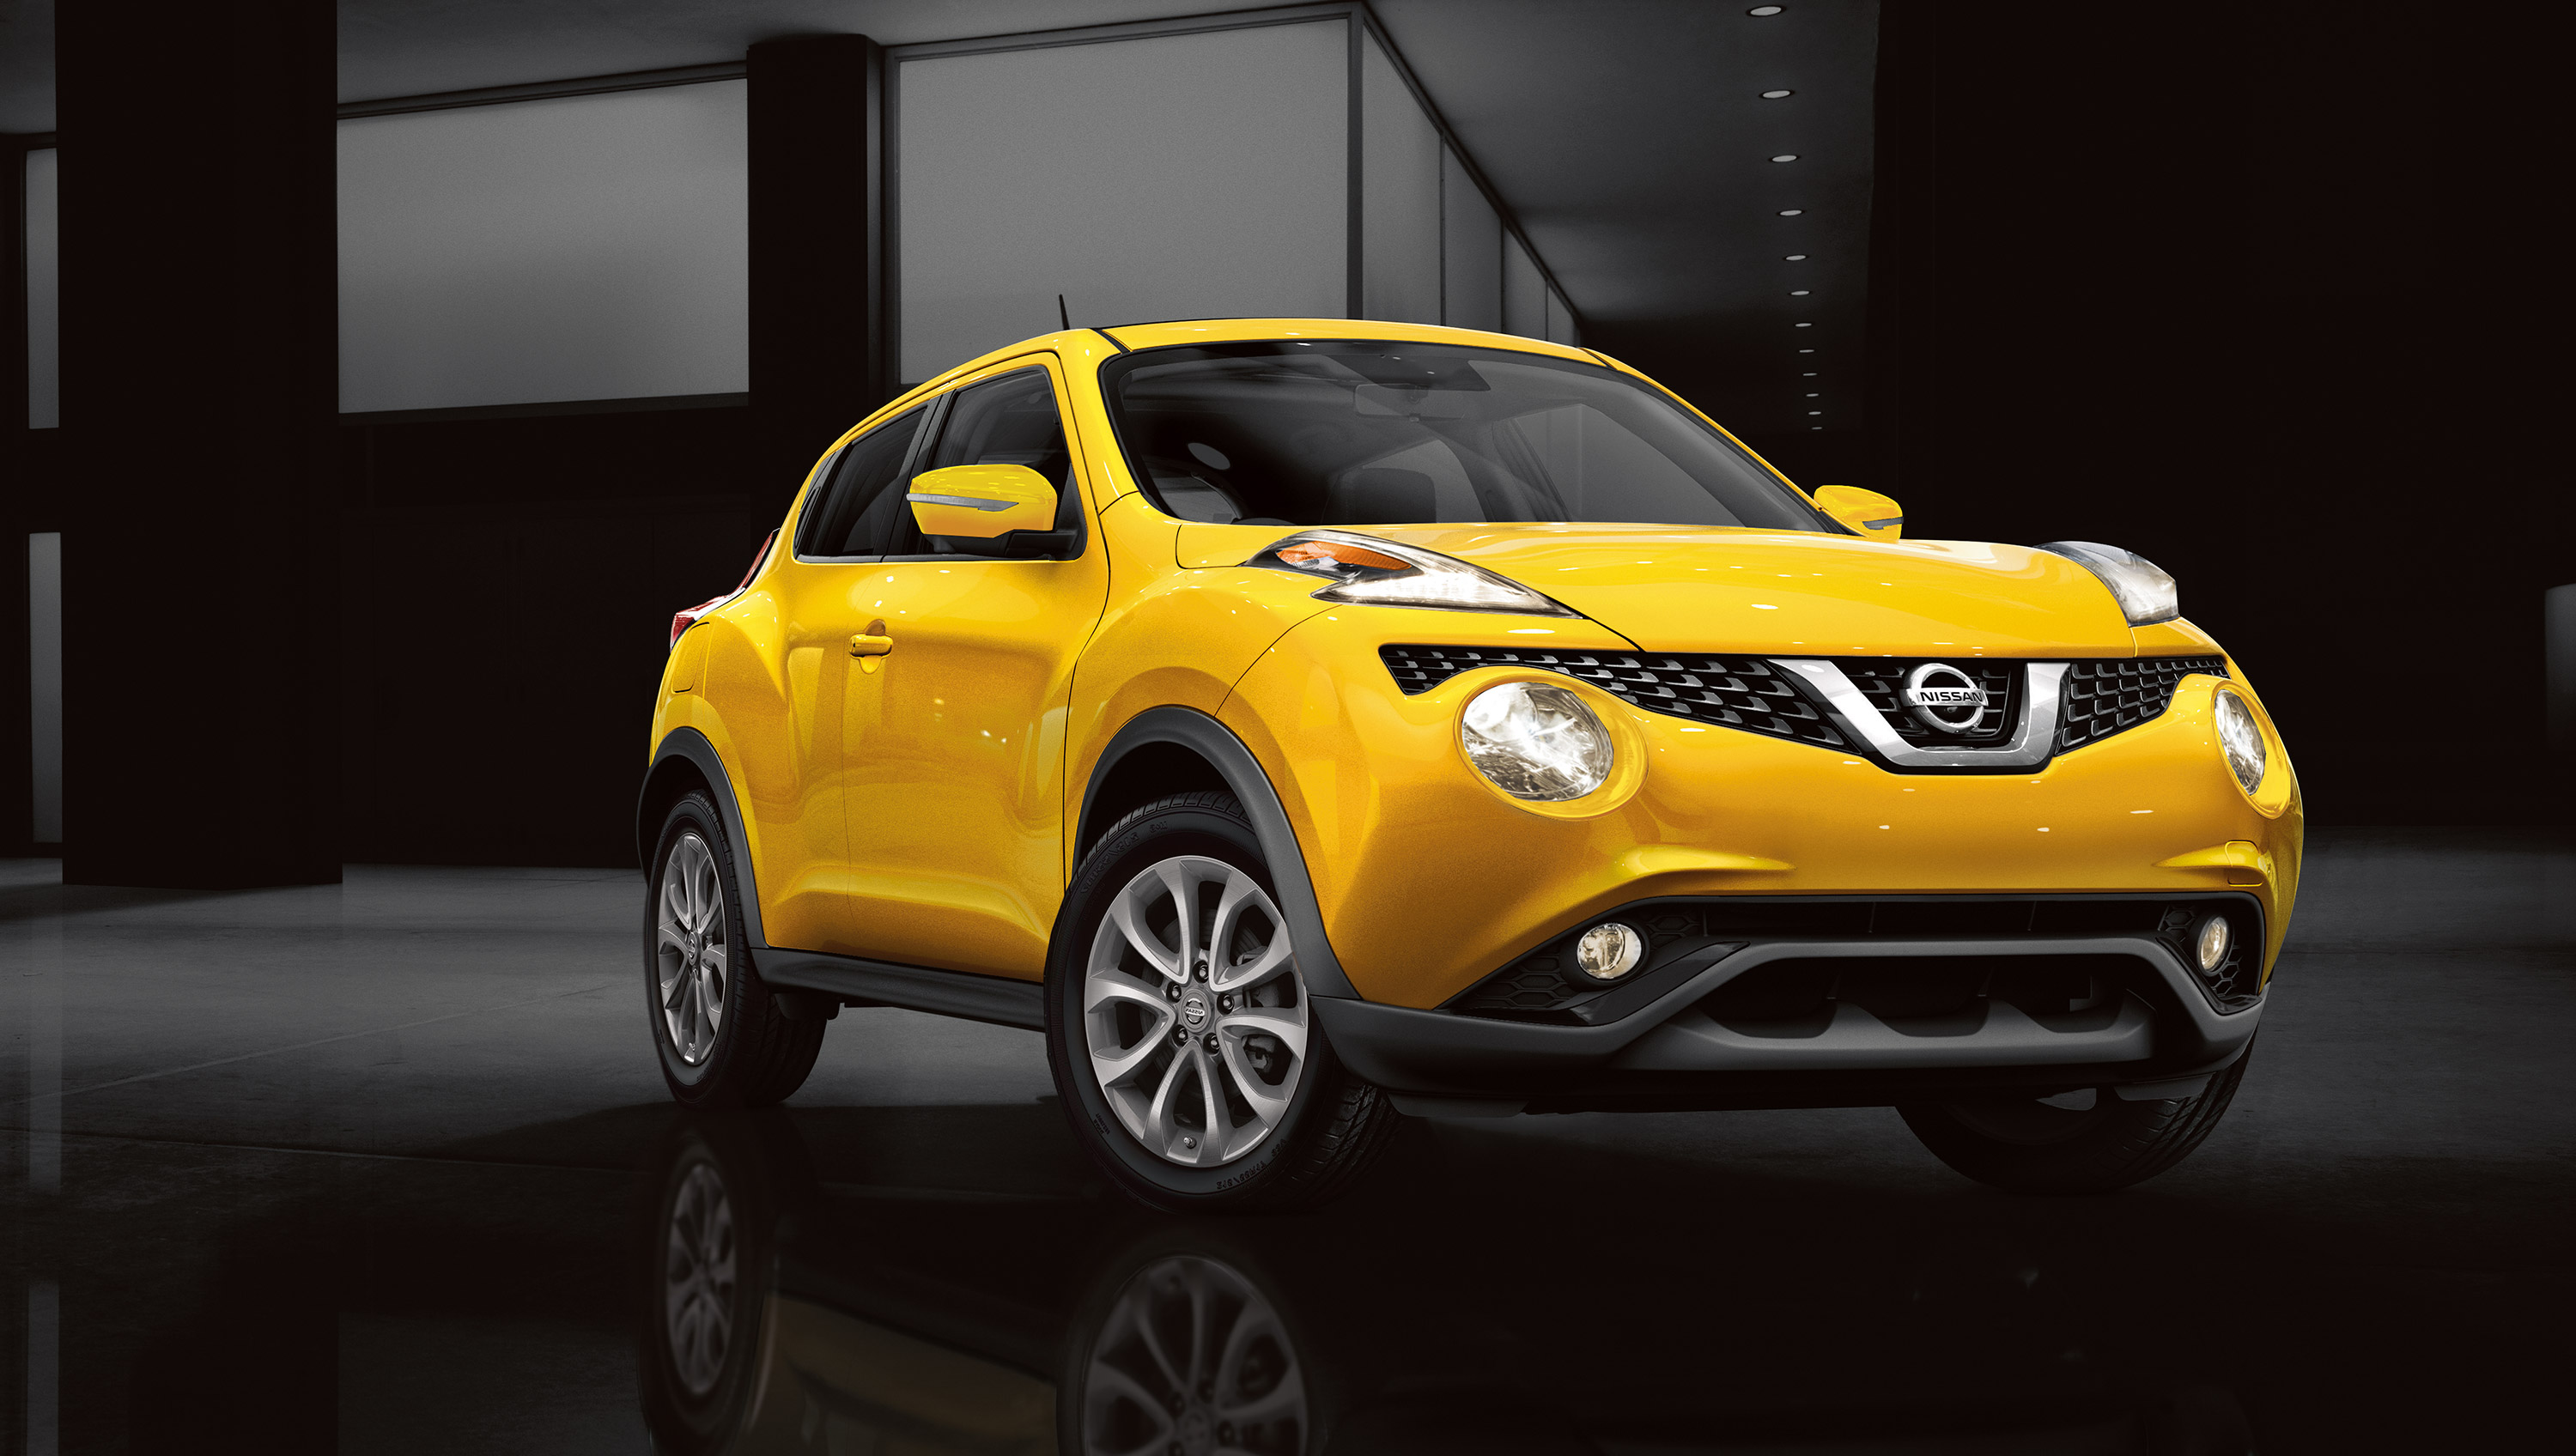 new nearby dealers of cars in nice dealer ma nissan memphis dealerships